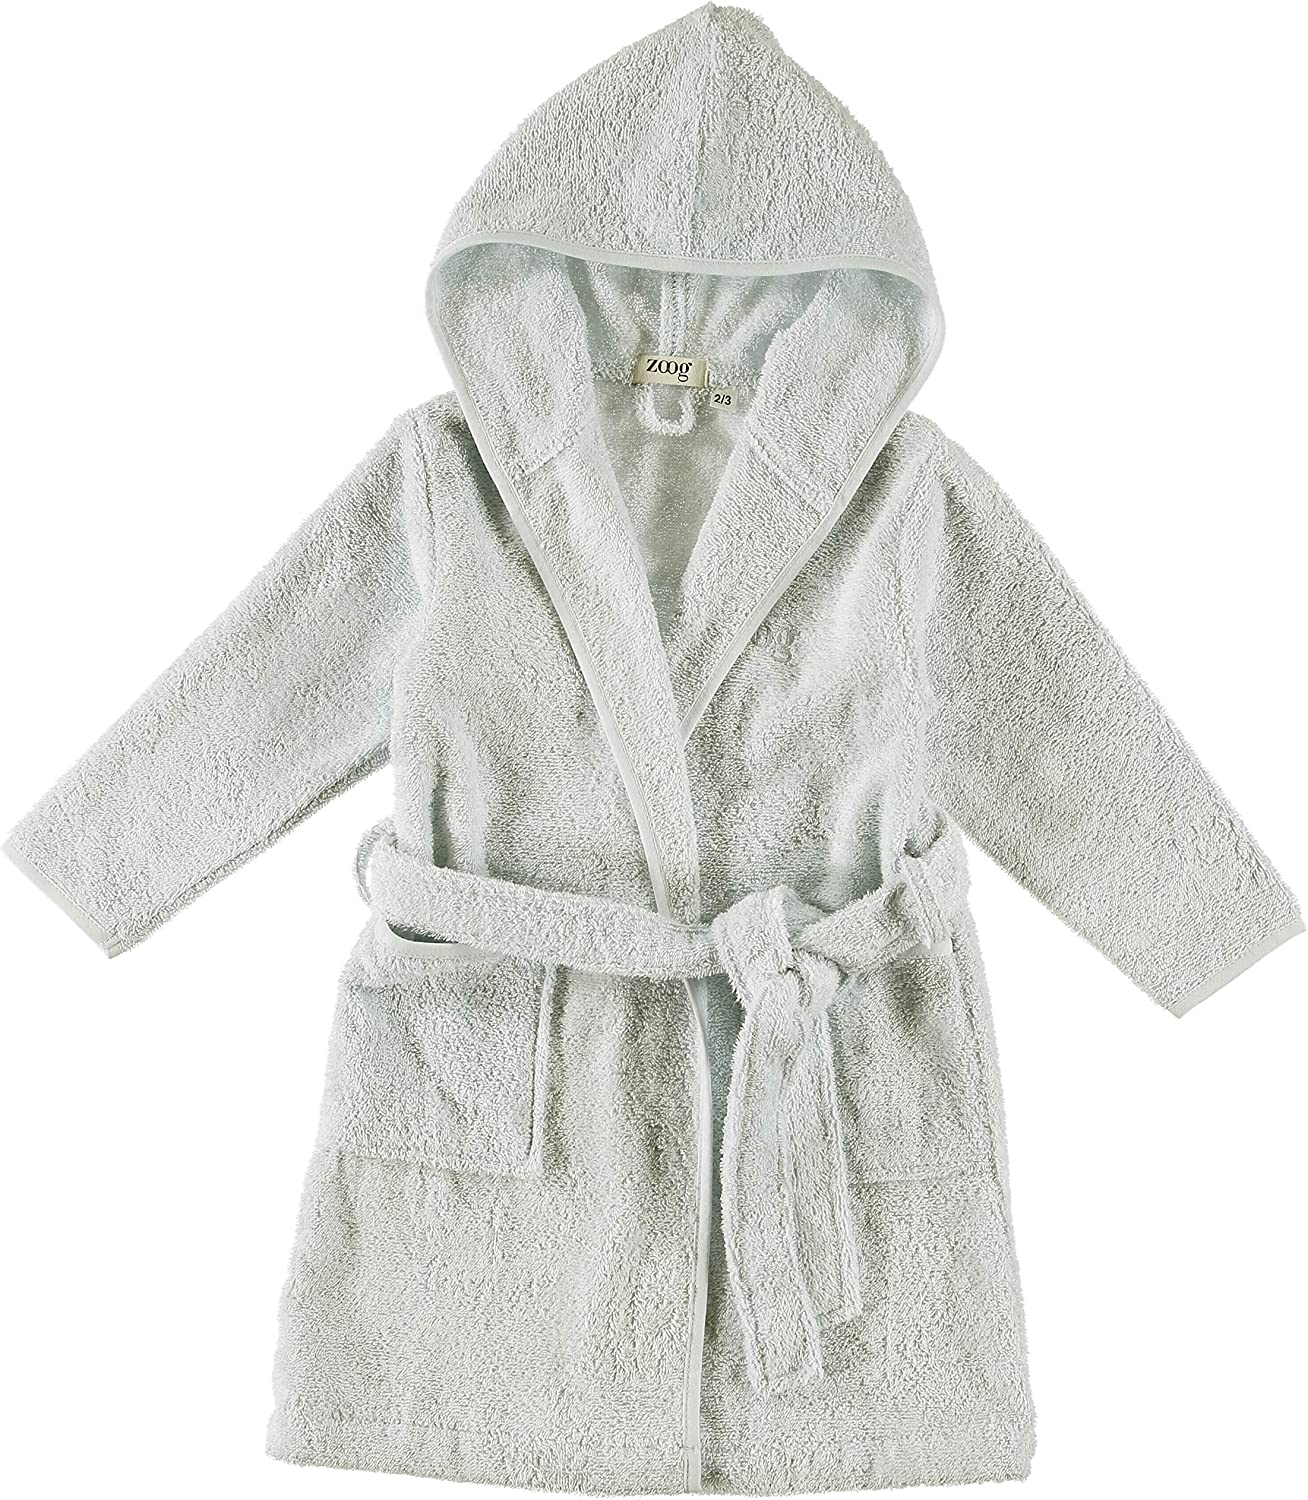 Zoog Organic Cotton Hooded Baby Bath Robe Natural Dye Premium Quality GOTS Certified Non-Chemical Non-Toxic 100% Vegan Soft Comfortable Green (2-3 Years, Green)